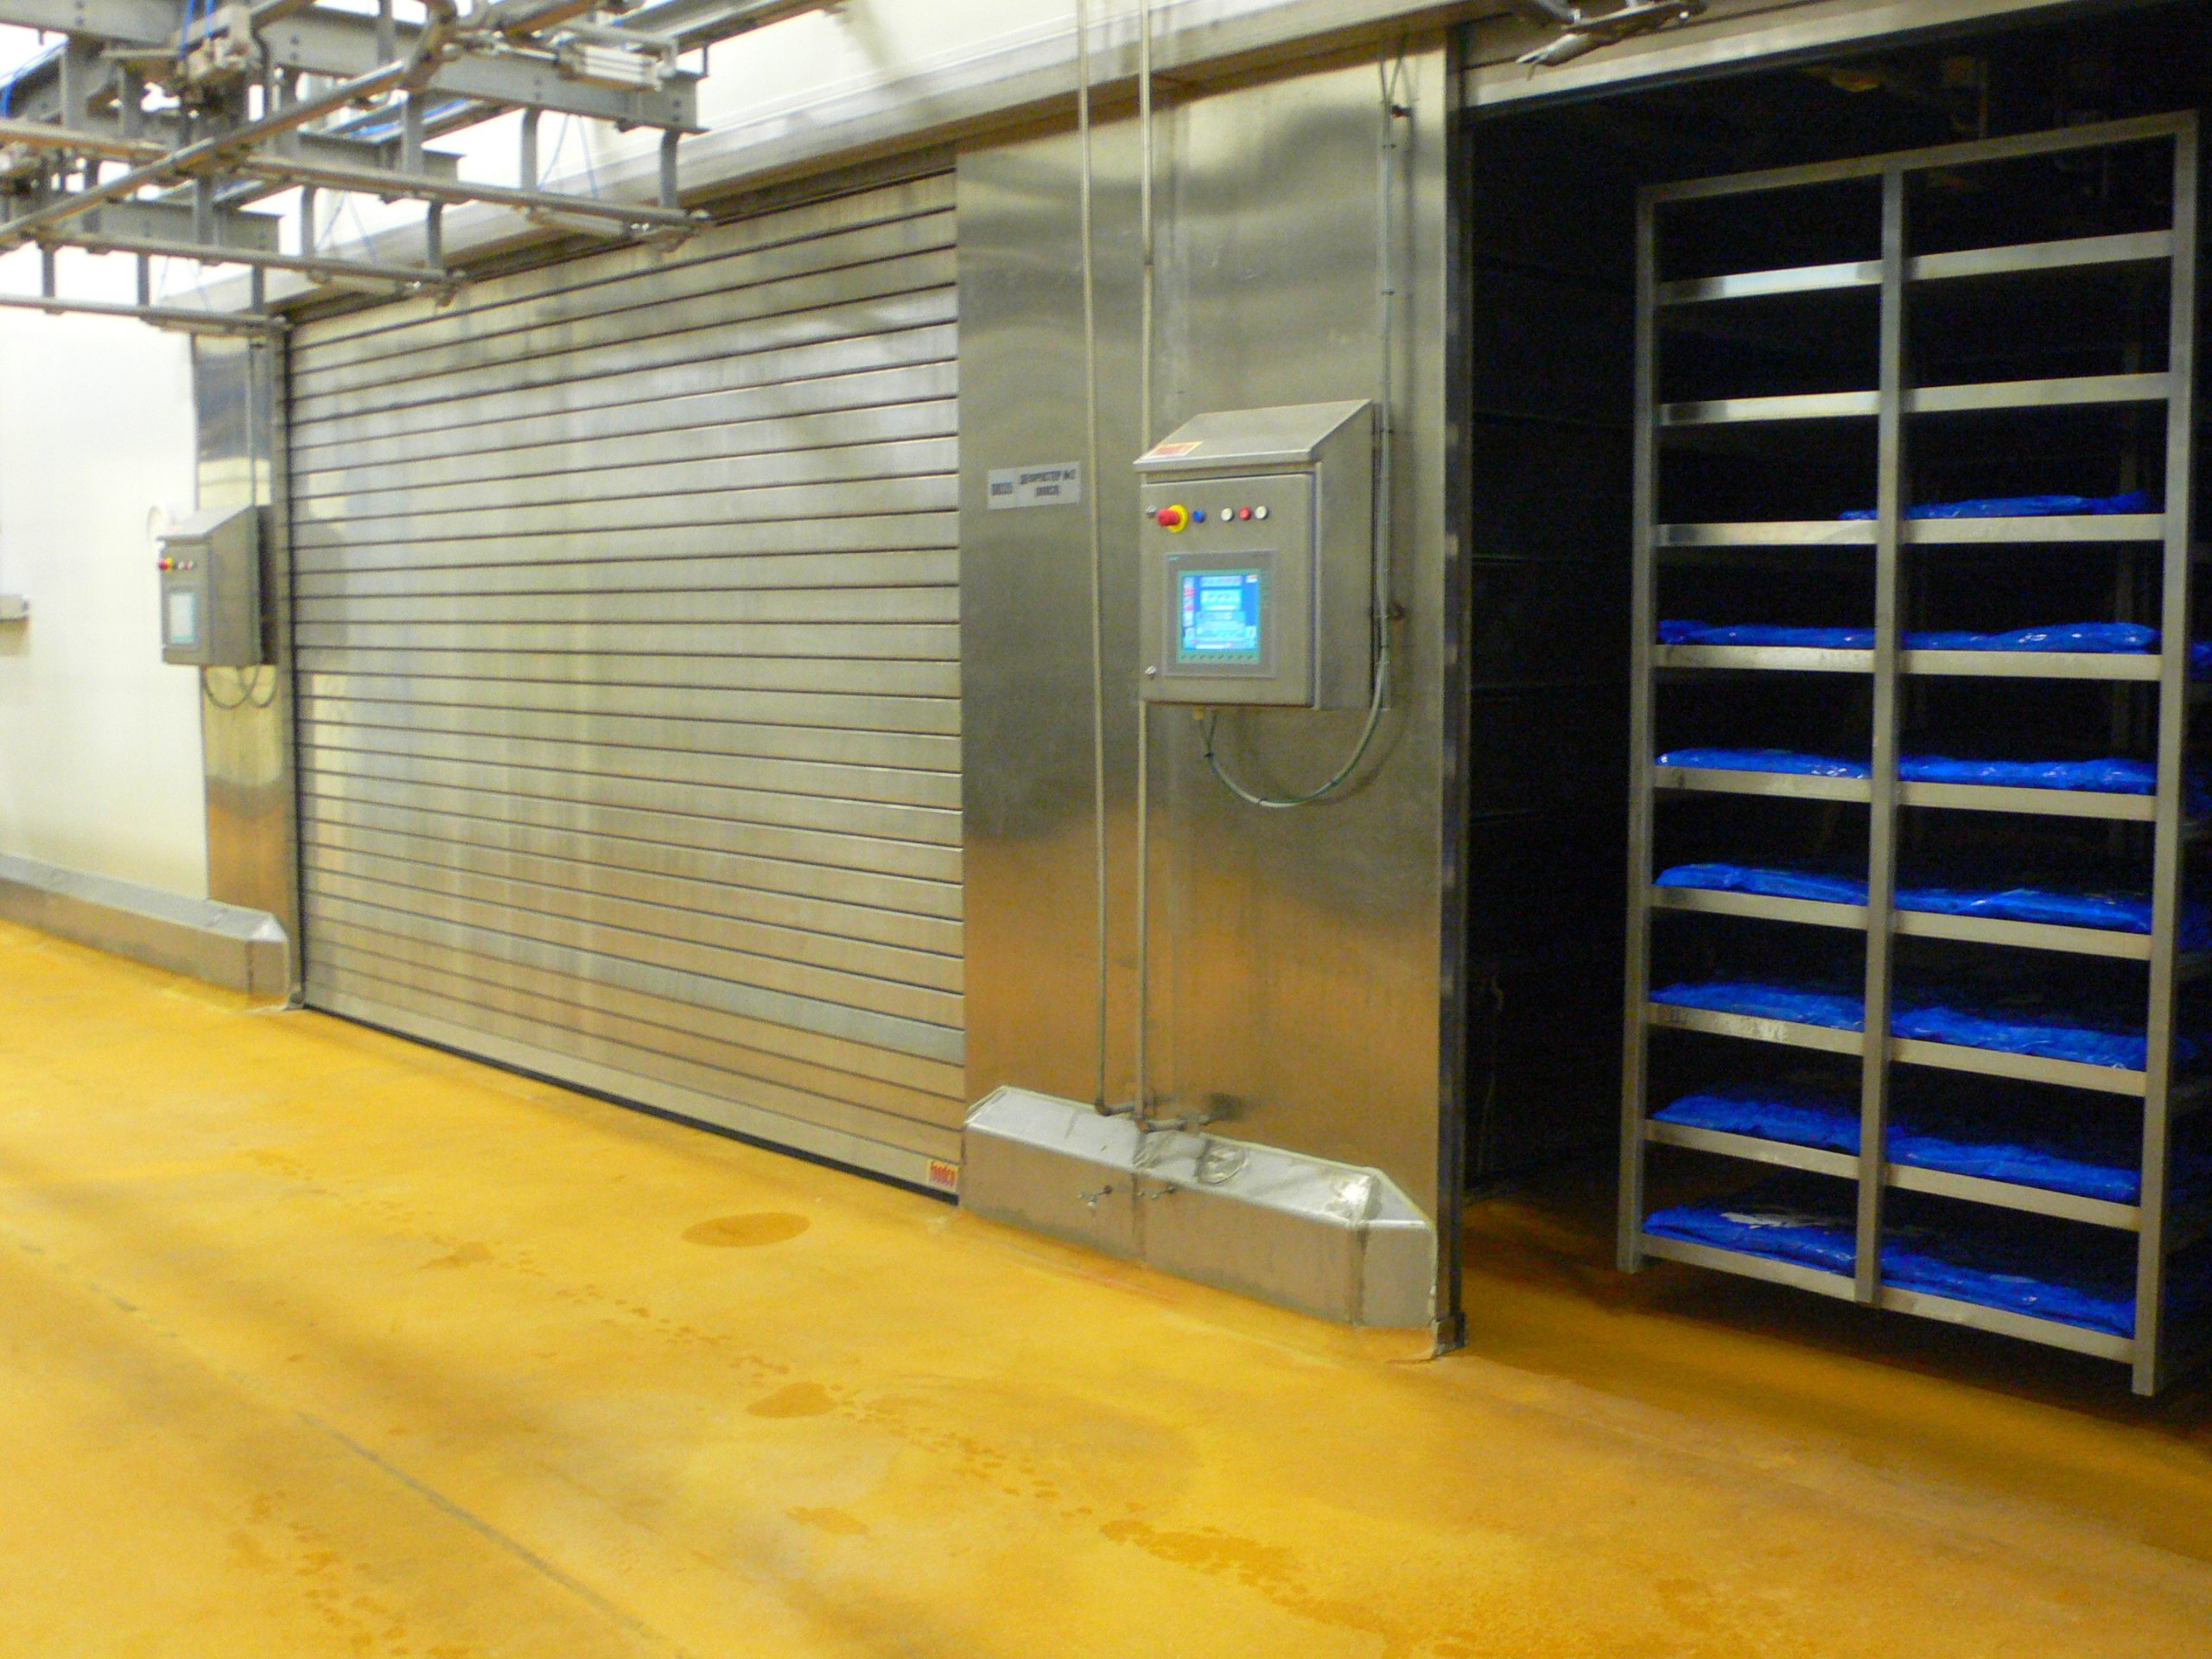 Foodco Global Machinery - 3 UNITS WITH 27 TROLLEY DEFROST CAPACITY.